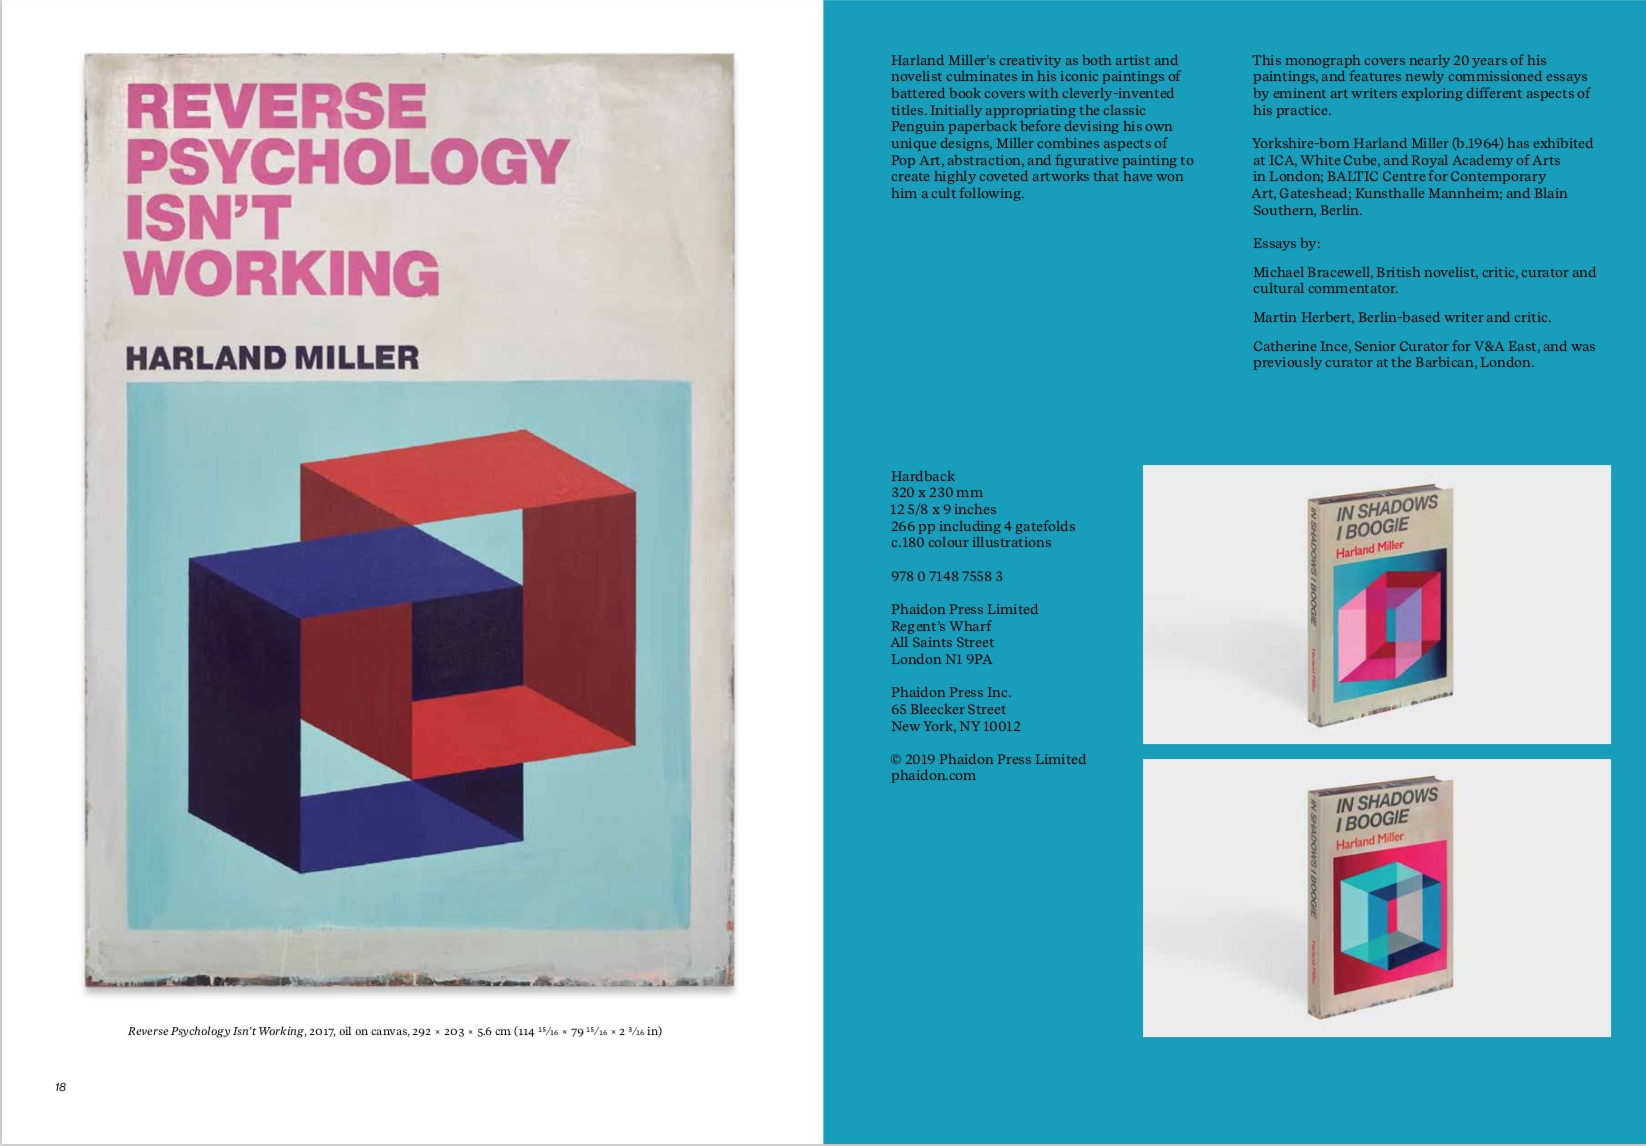 By Michael Bracewell, Martin Herbert, Catherine Ince from Harland Miller: In Shadows I Boogie copyright Phaidon 2019